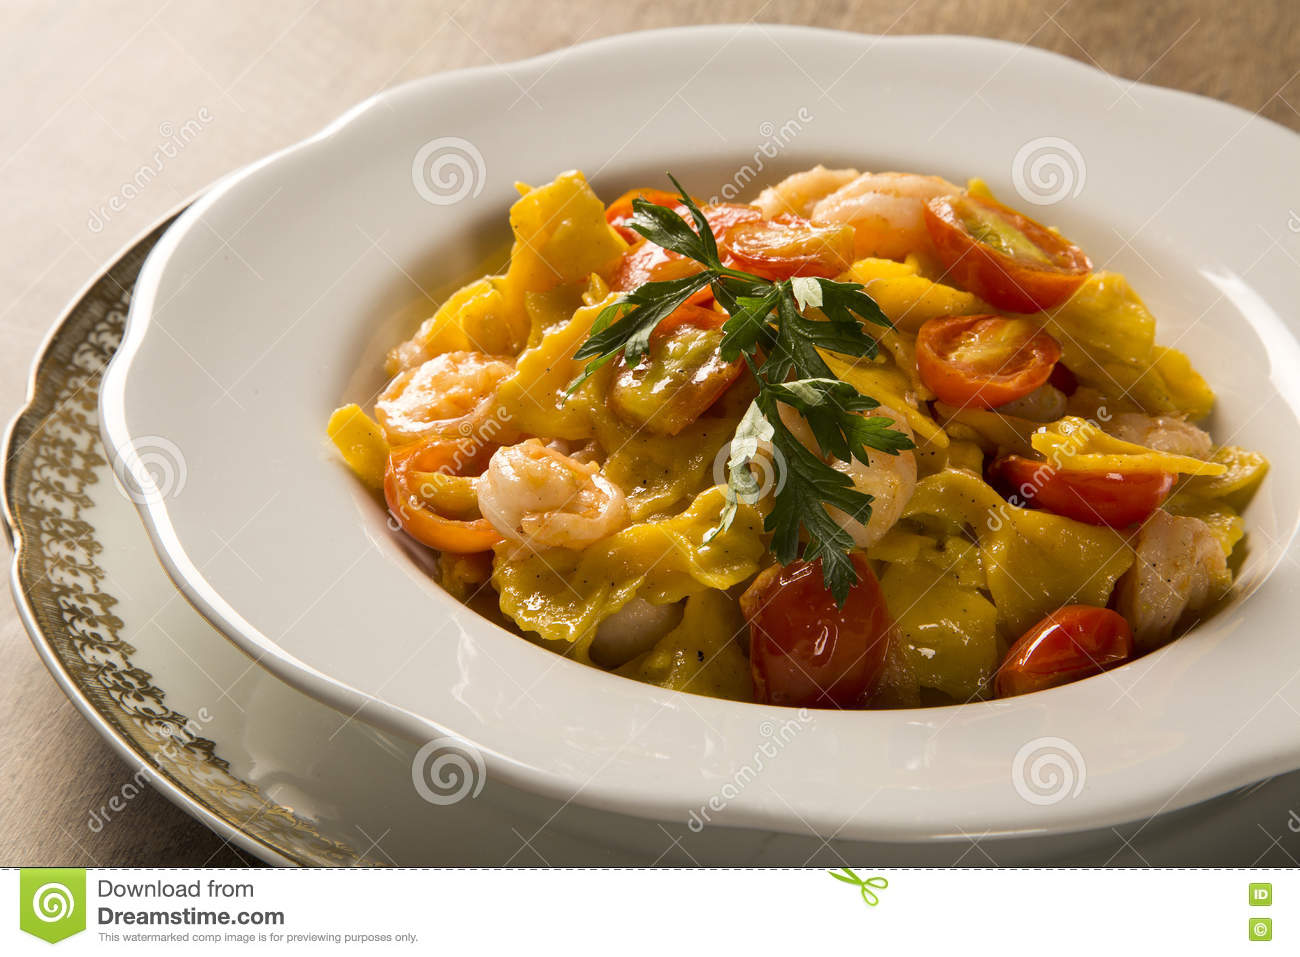 Pumpkin farfalle with shrimp and cherry tomato